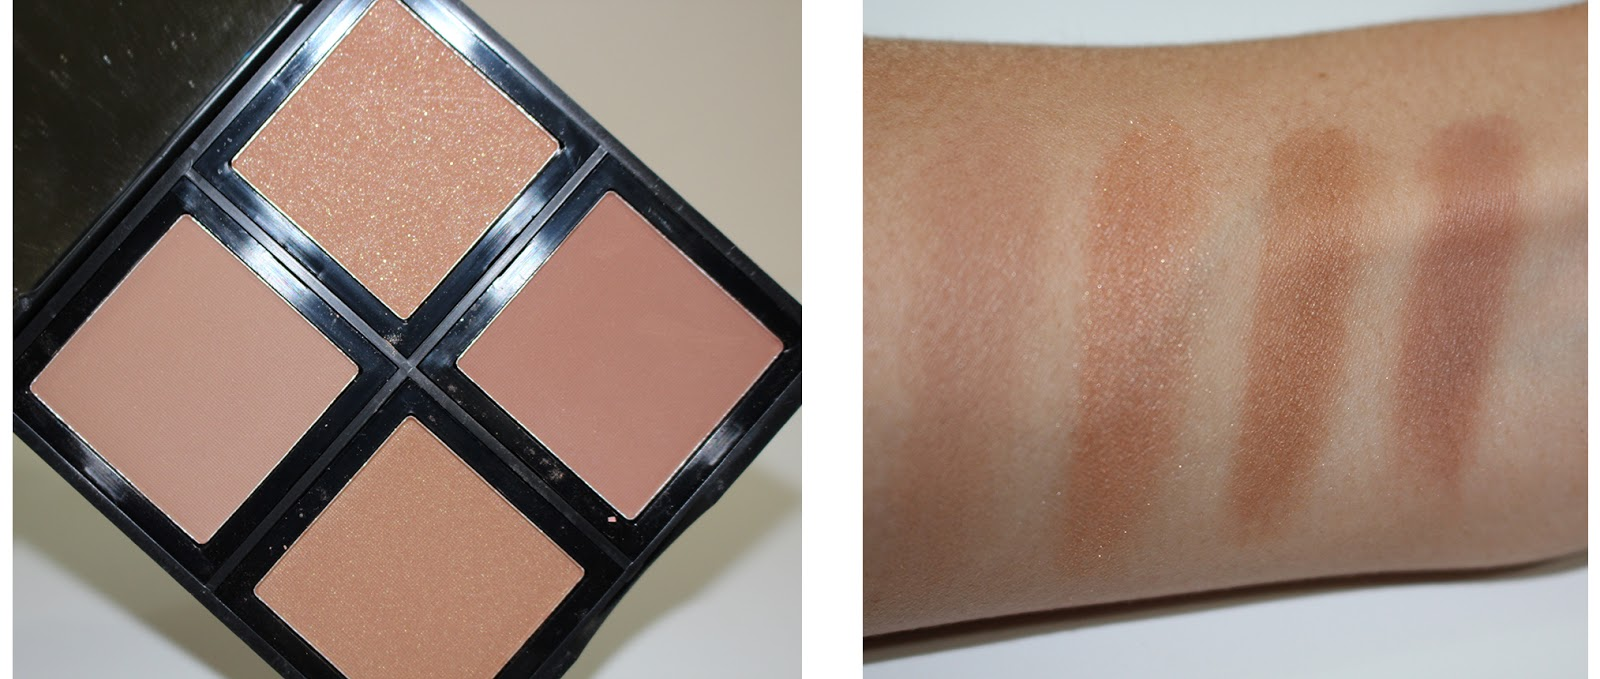 Bronzers elf studio bronzer palette review there are two matte bronzers and two gold shimmer bronzers and yes the swatches on my arm look amazing but in reality trying to build enough color to ccuart Choice Image